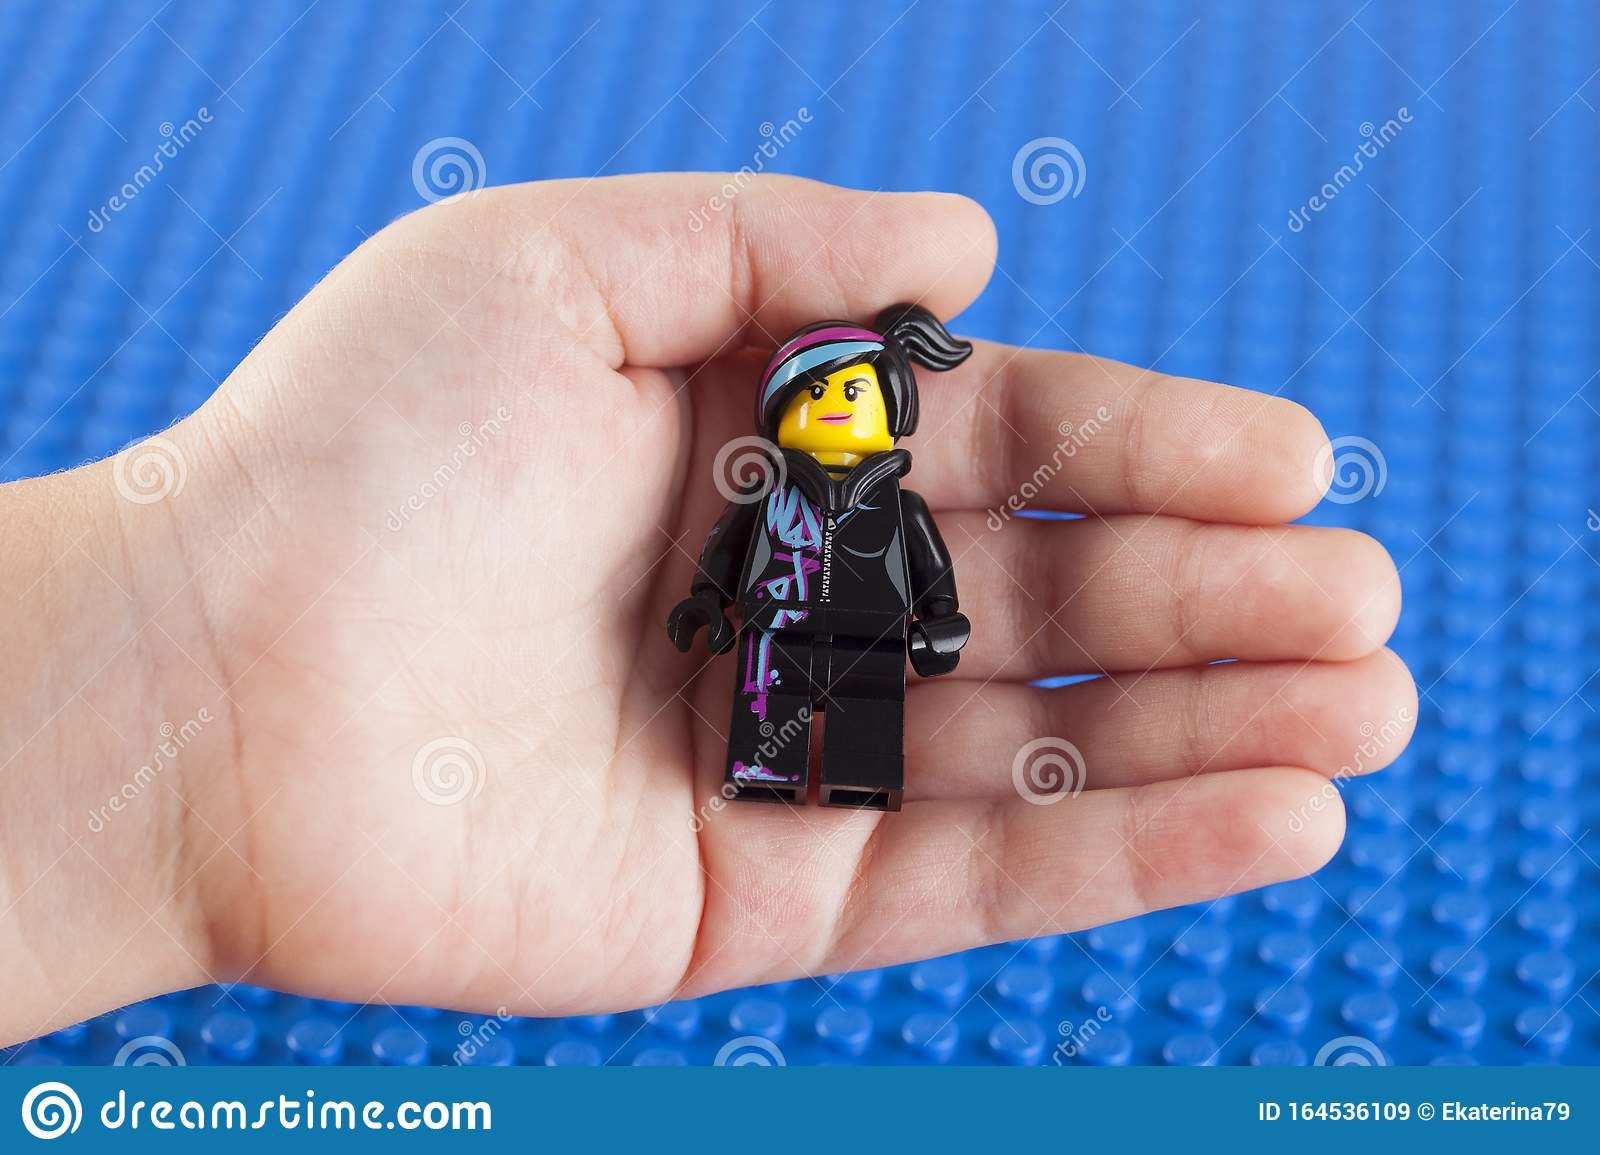 Lego Wyldstyle Minifigure In Child Hand Editorial Stock Image Image Of Blue Movie 164536109